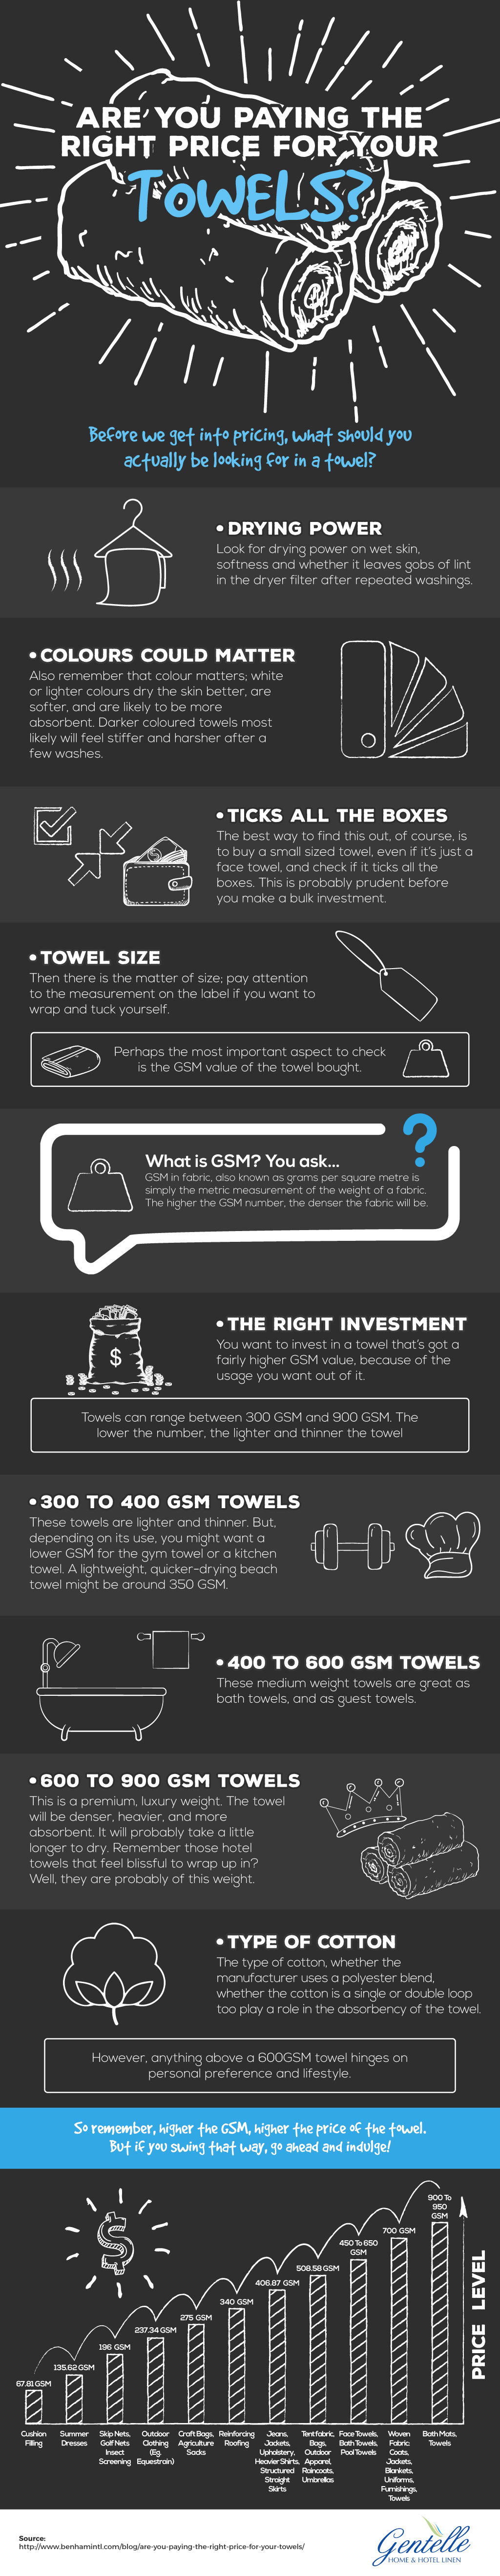 Infographic: Are you paying the right price for your towels?